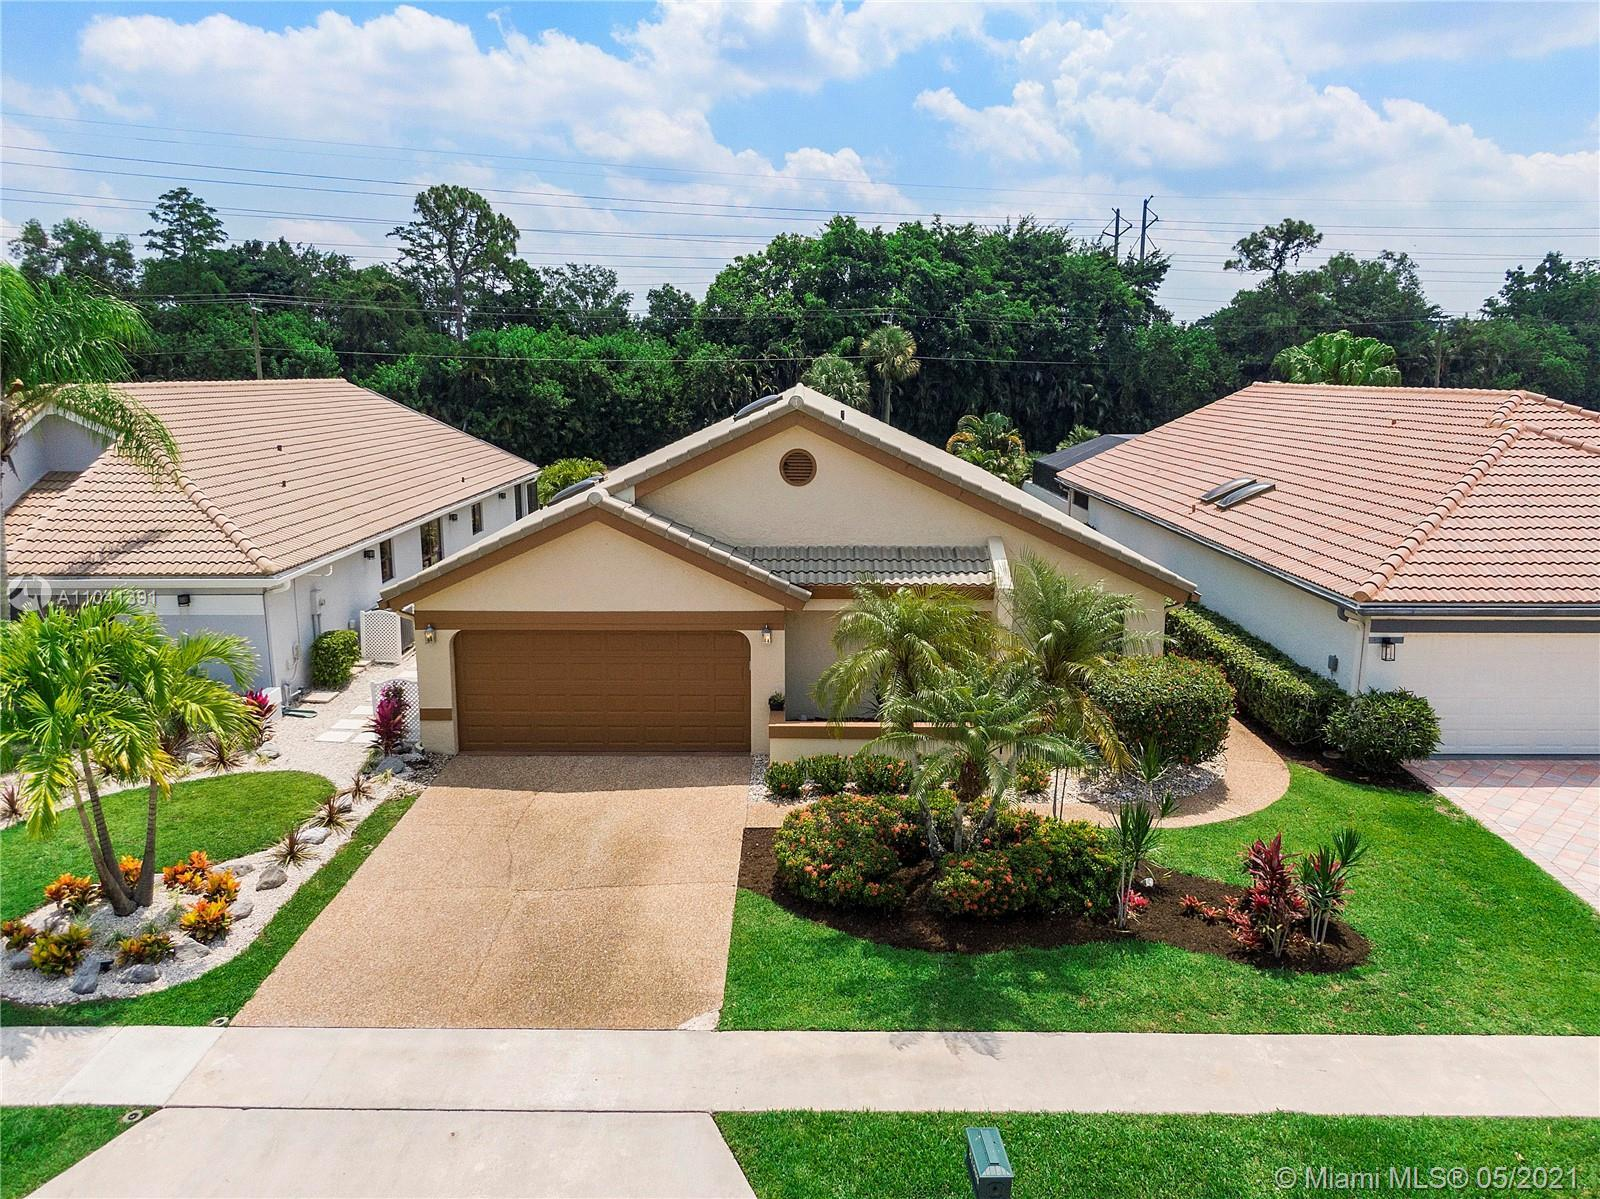 Outstanding single-family home for sale at Boca Woods Country Club, a desirable gated golf community